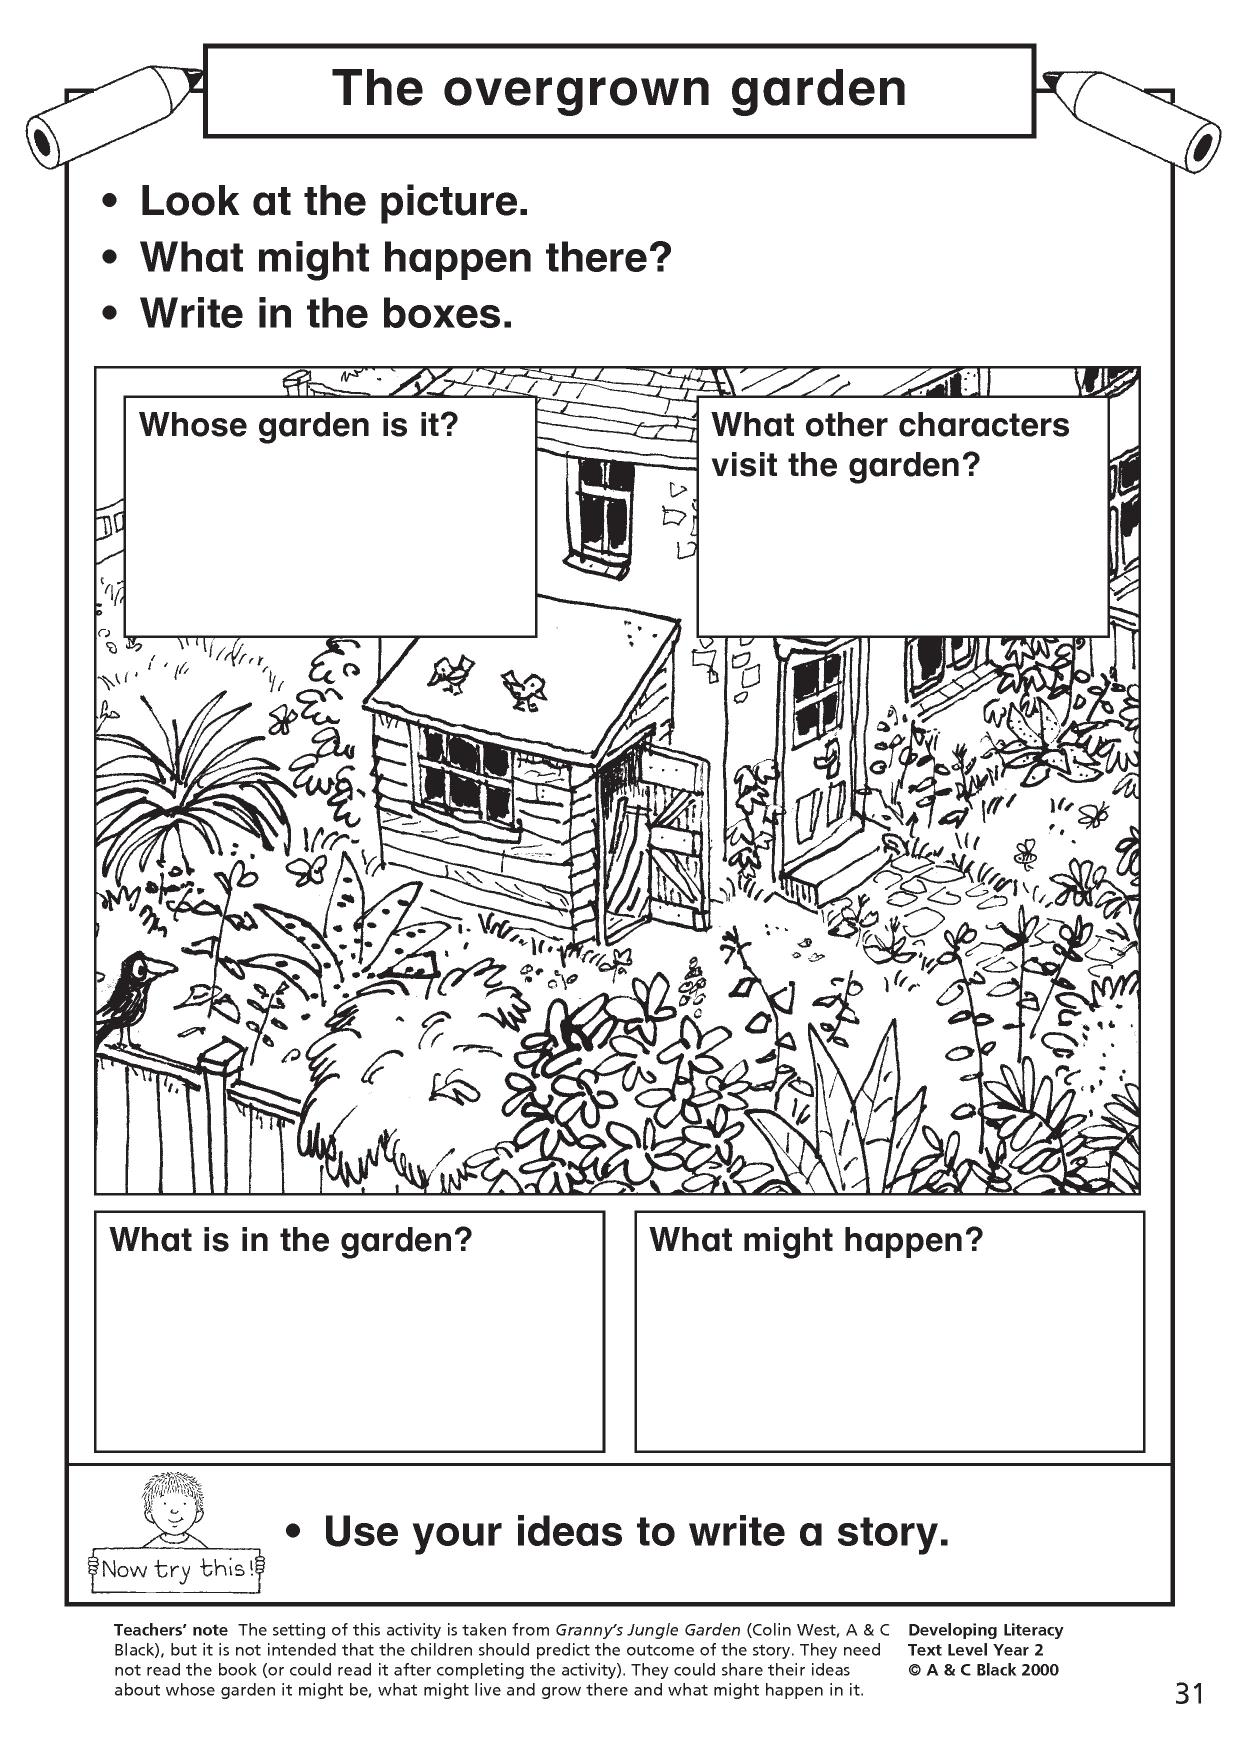 5 Senses Descriptive Writing Worksheet